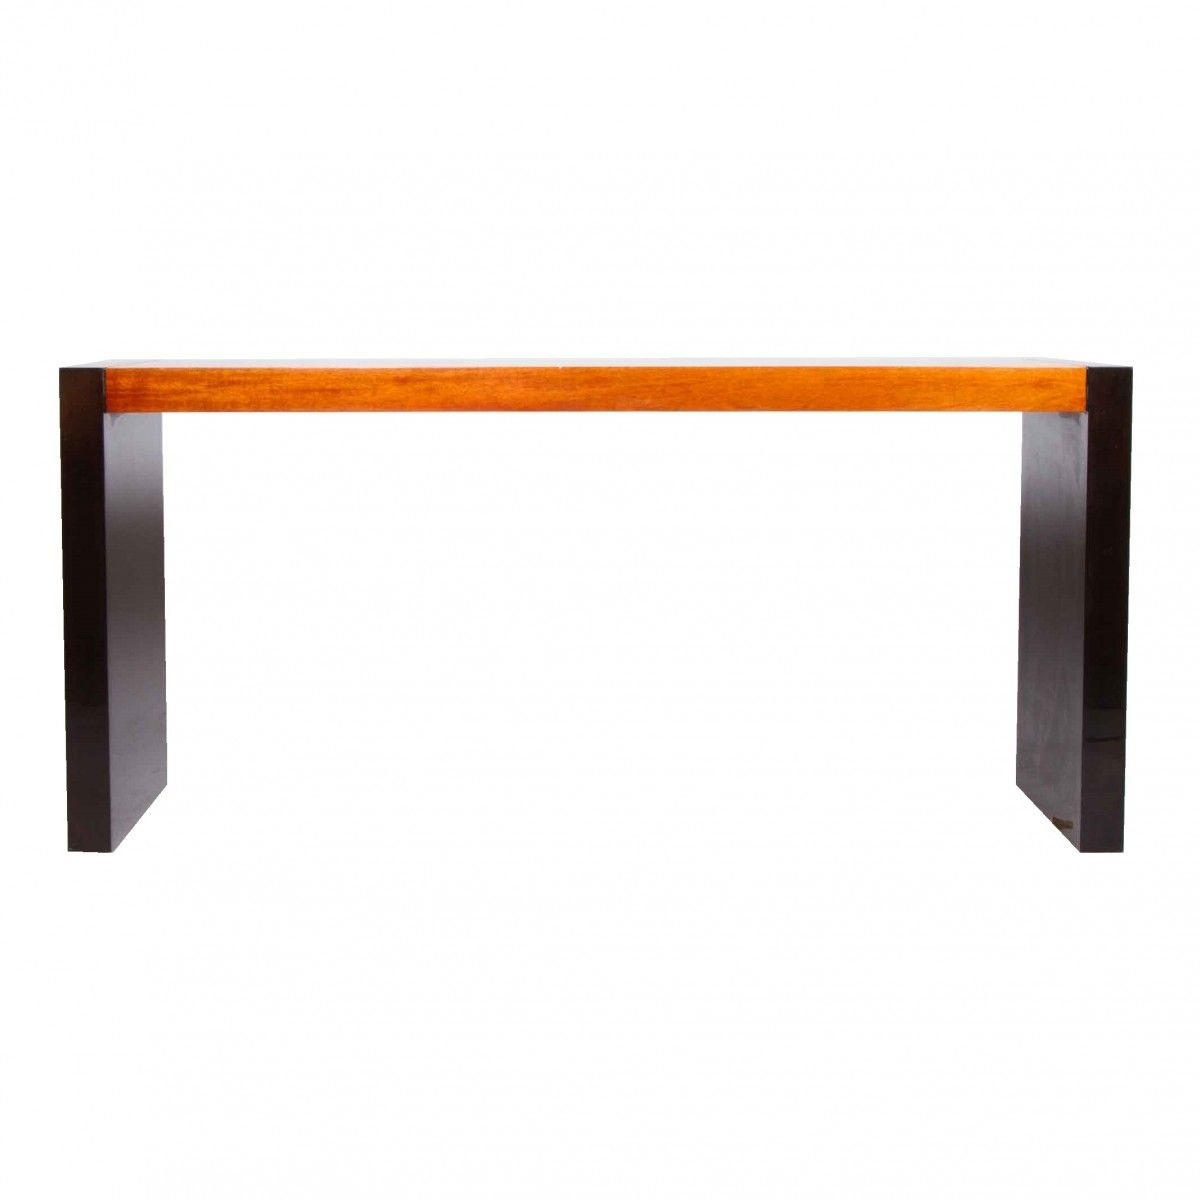 Fabulous Large Modern Console Table w/Charcoal Lacquered Legs and Amber Wood Top at DecorNYC